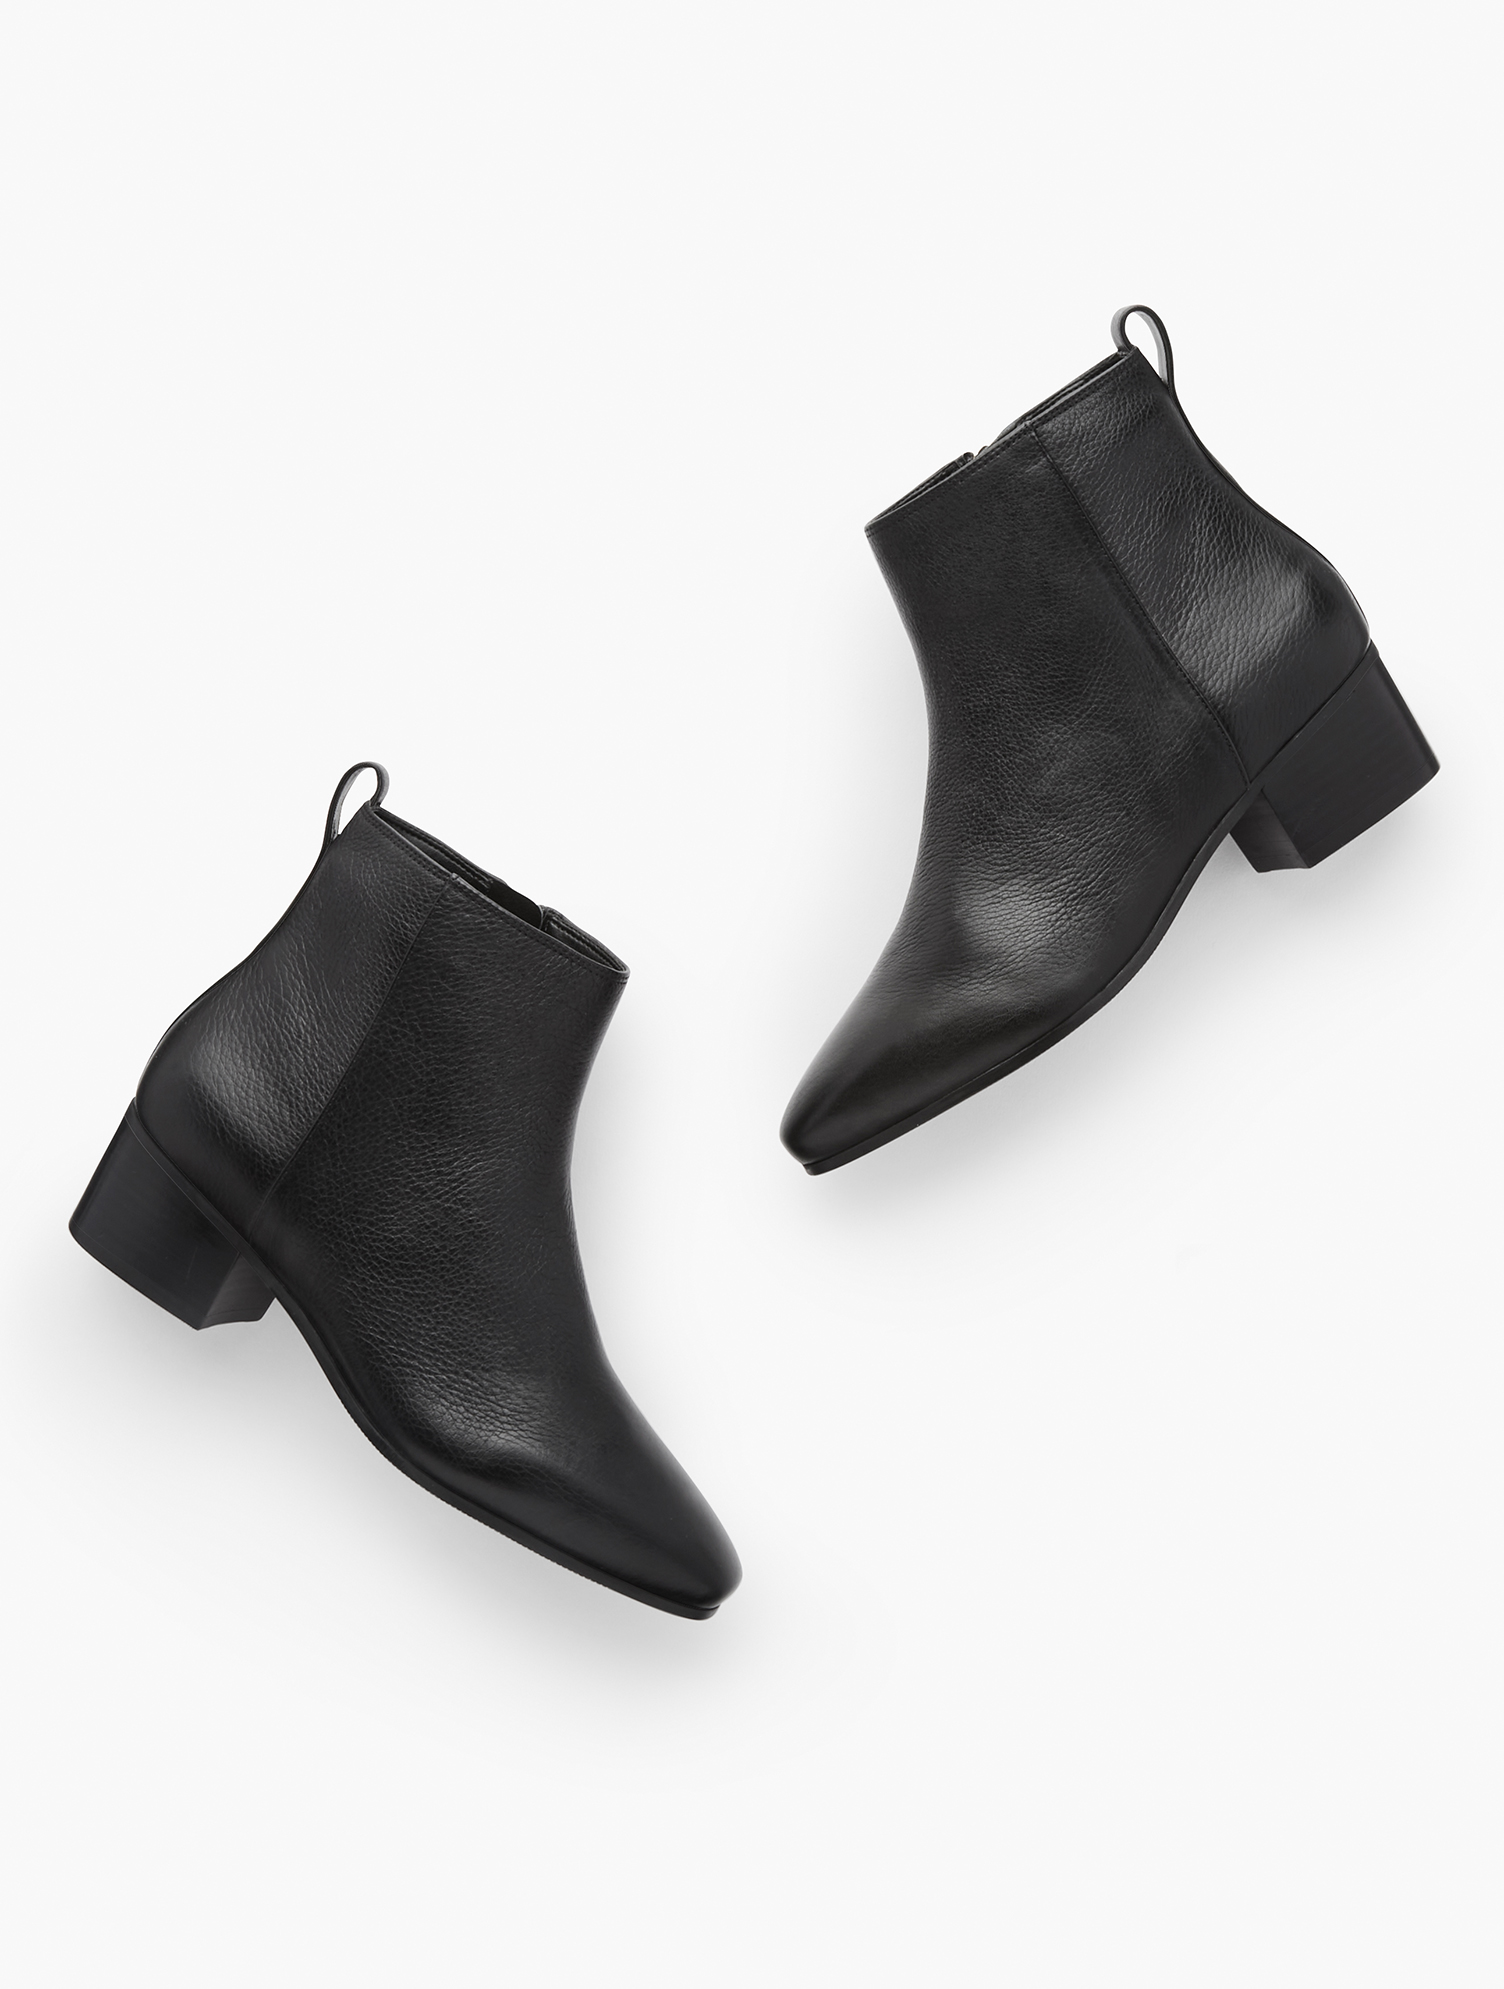 Your favorite Dakota ankle boots are back. In soft pebbled leather. With block heel and inside zip. Features Inside side zipper1 3/4 inches heelAlmond toe3MM Memory Foam FootbedImported Material: 100% Leather Dakota Ankle Boots - Pebbled Leather - Black - 11M Talbots